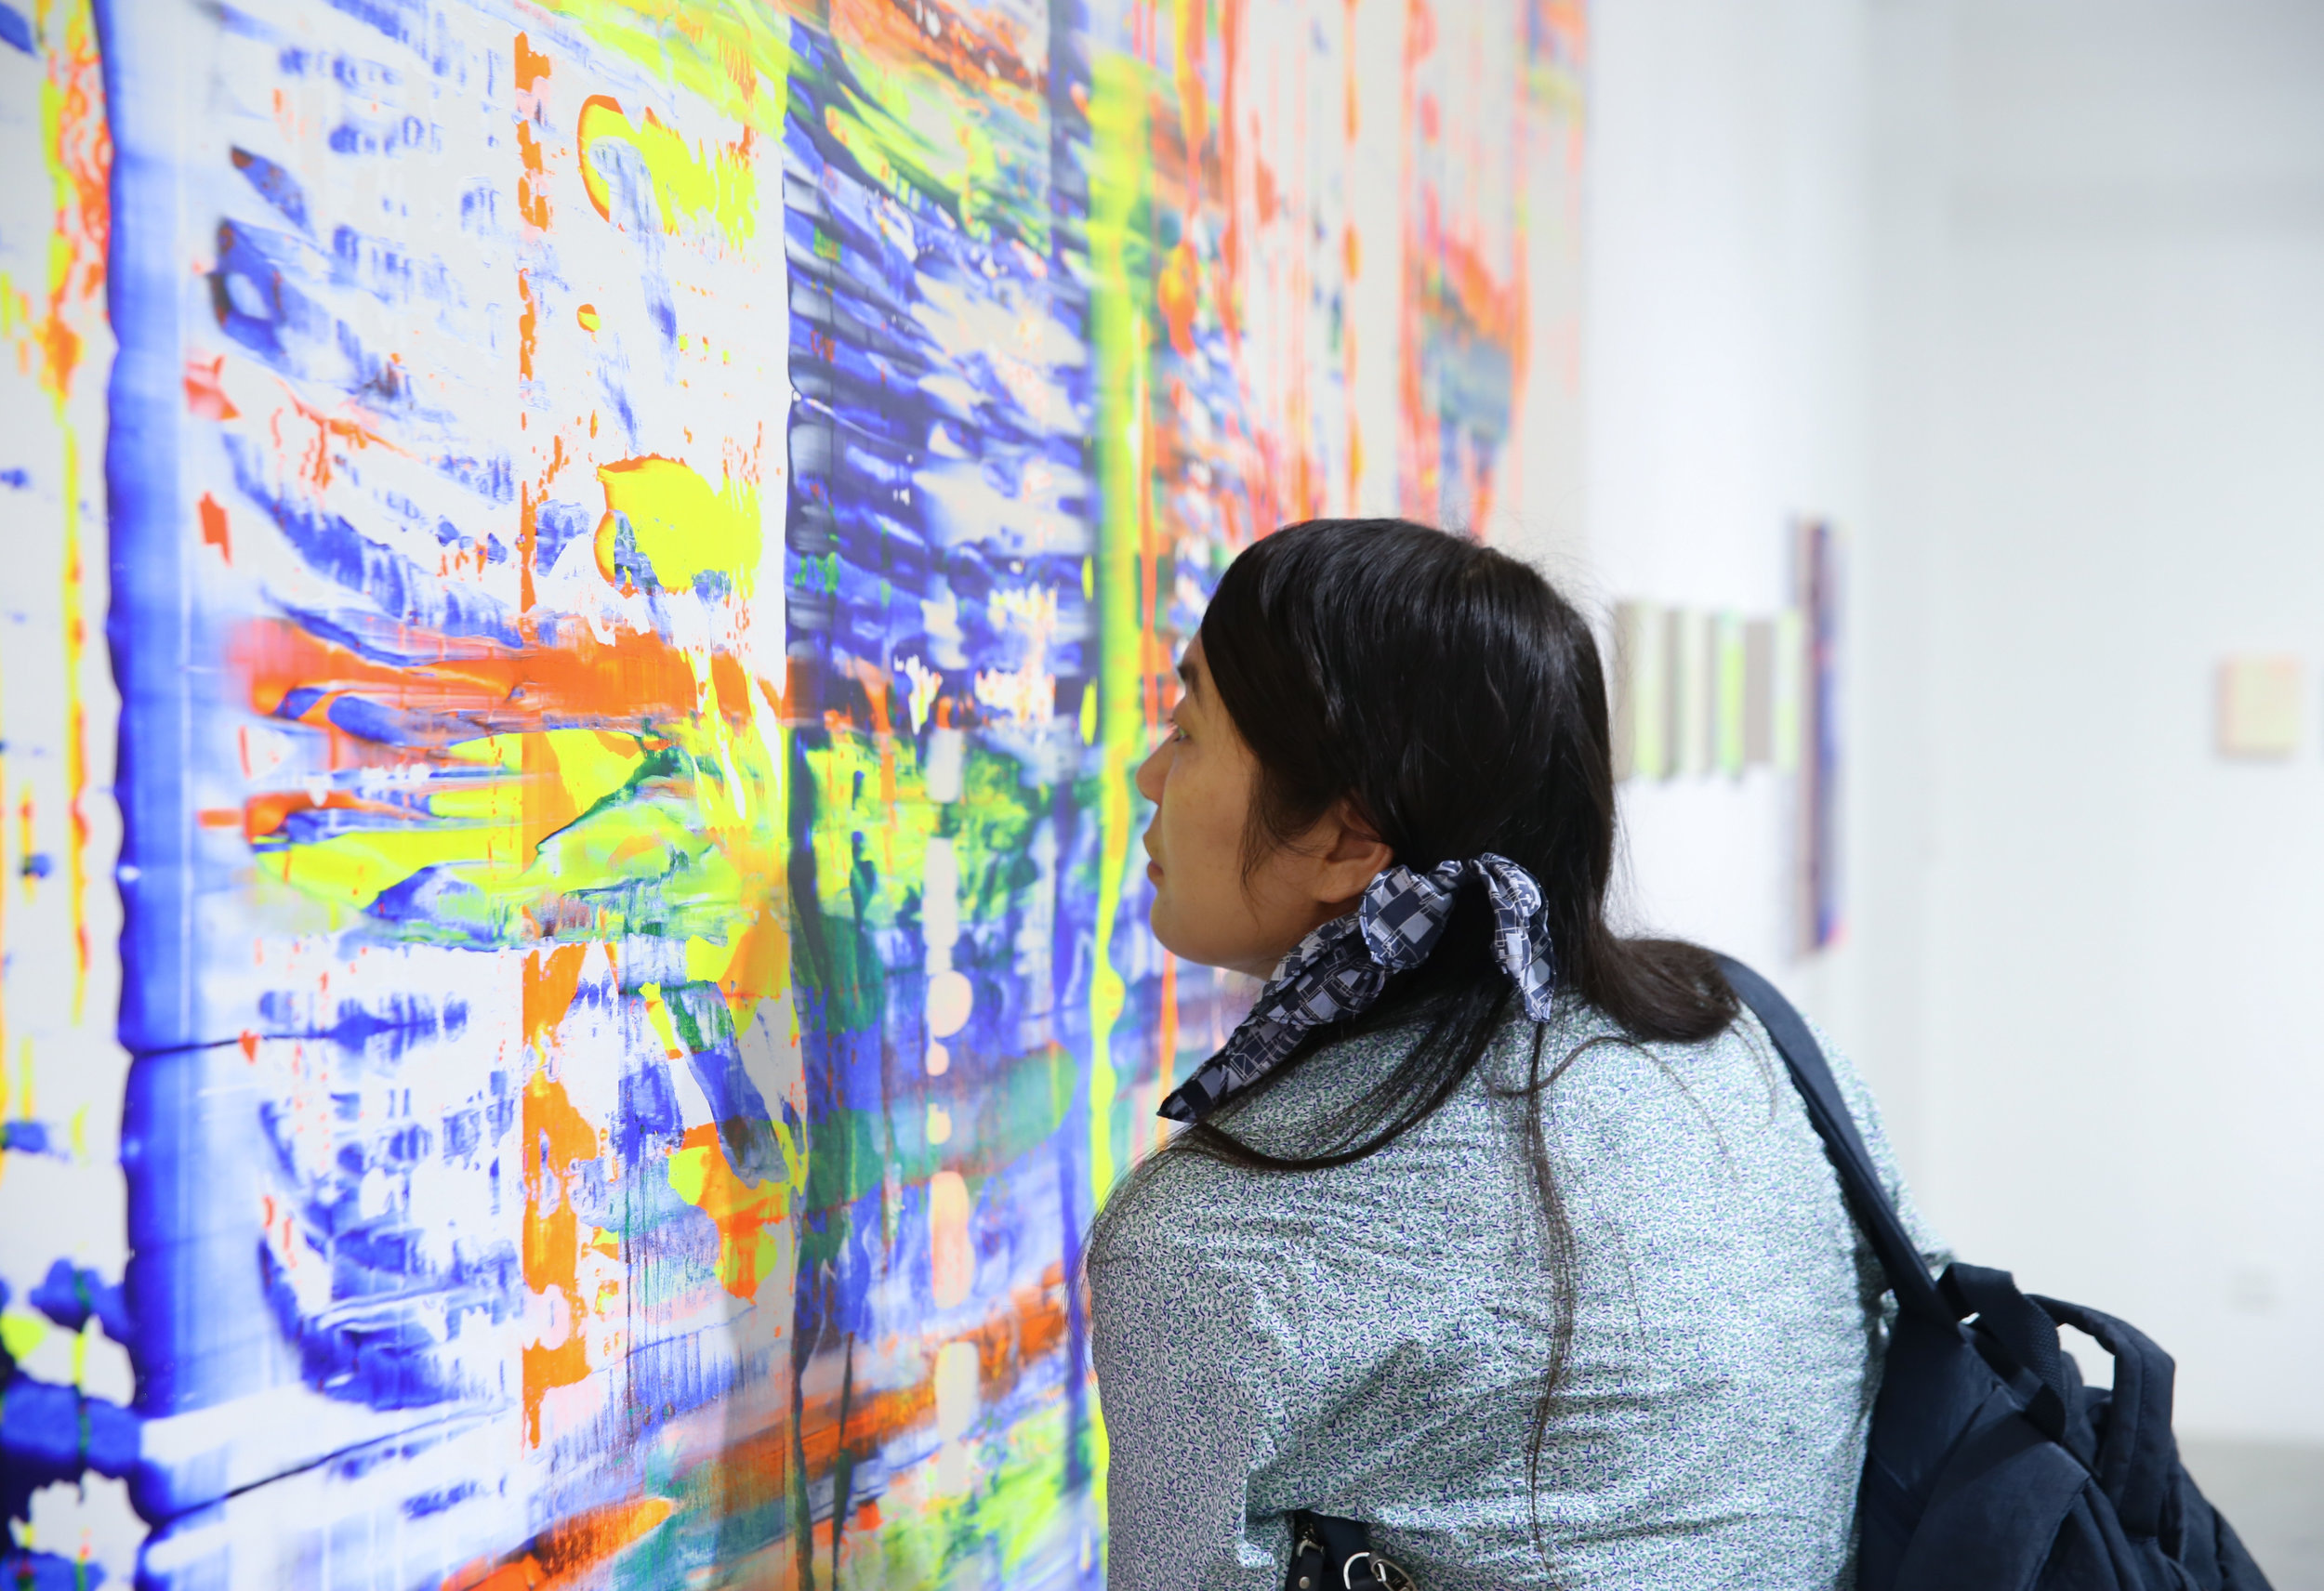 Exhibition 'Radiant Touch' in Guangzhou China photograph by Shanshan He